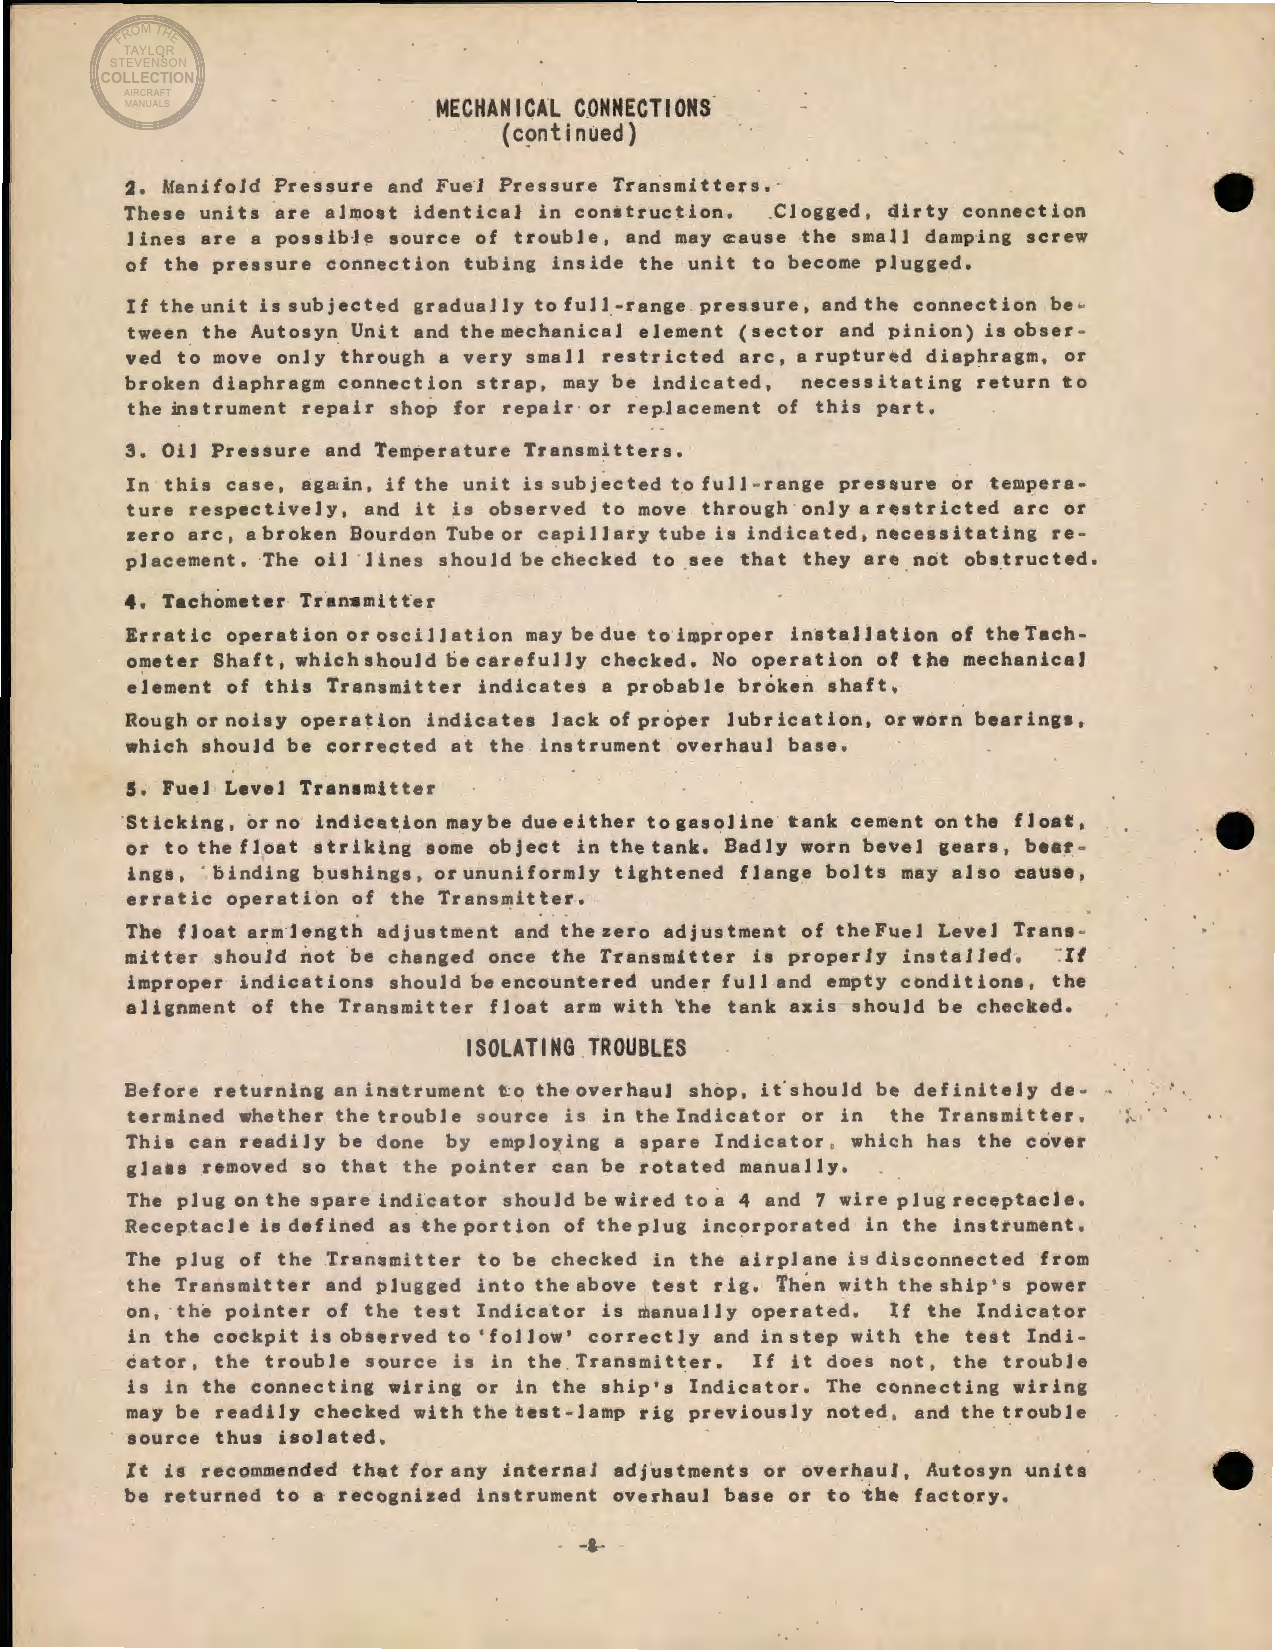 Sample page 8 from AirCorps Library document: Engine and Aeronautical Instruments for the B-17